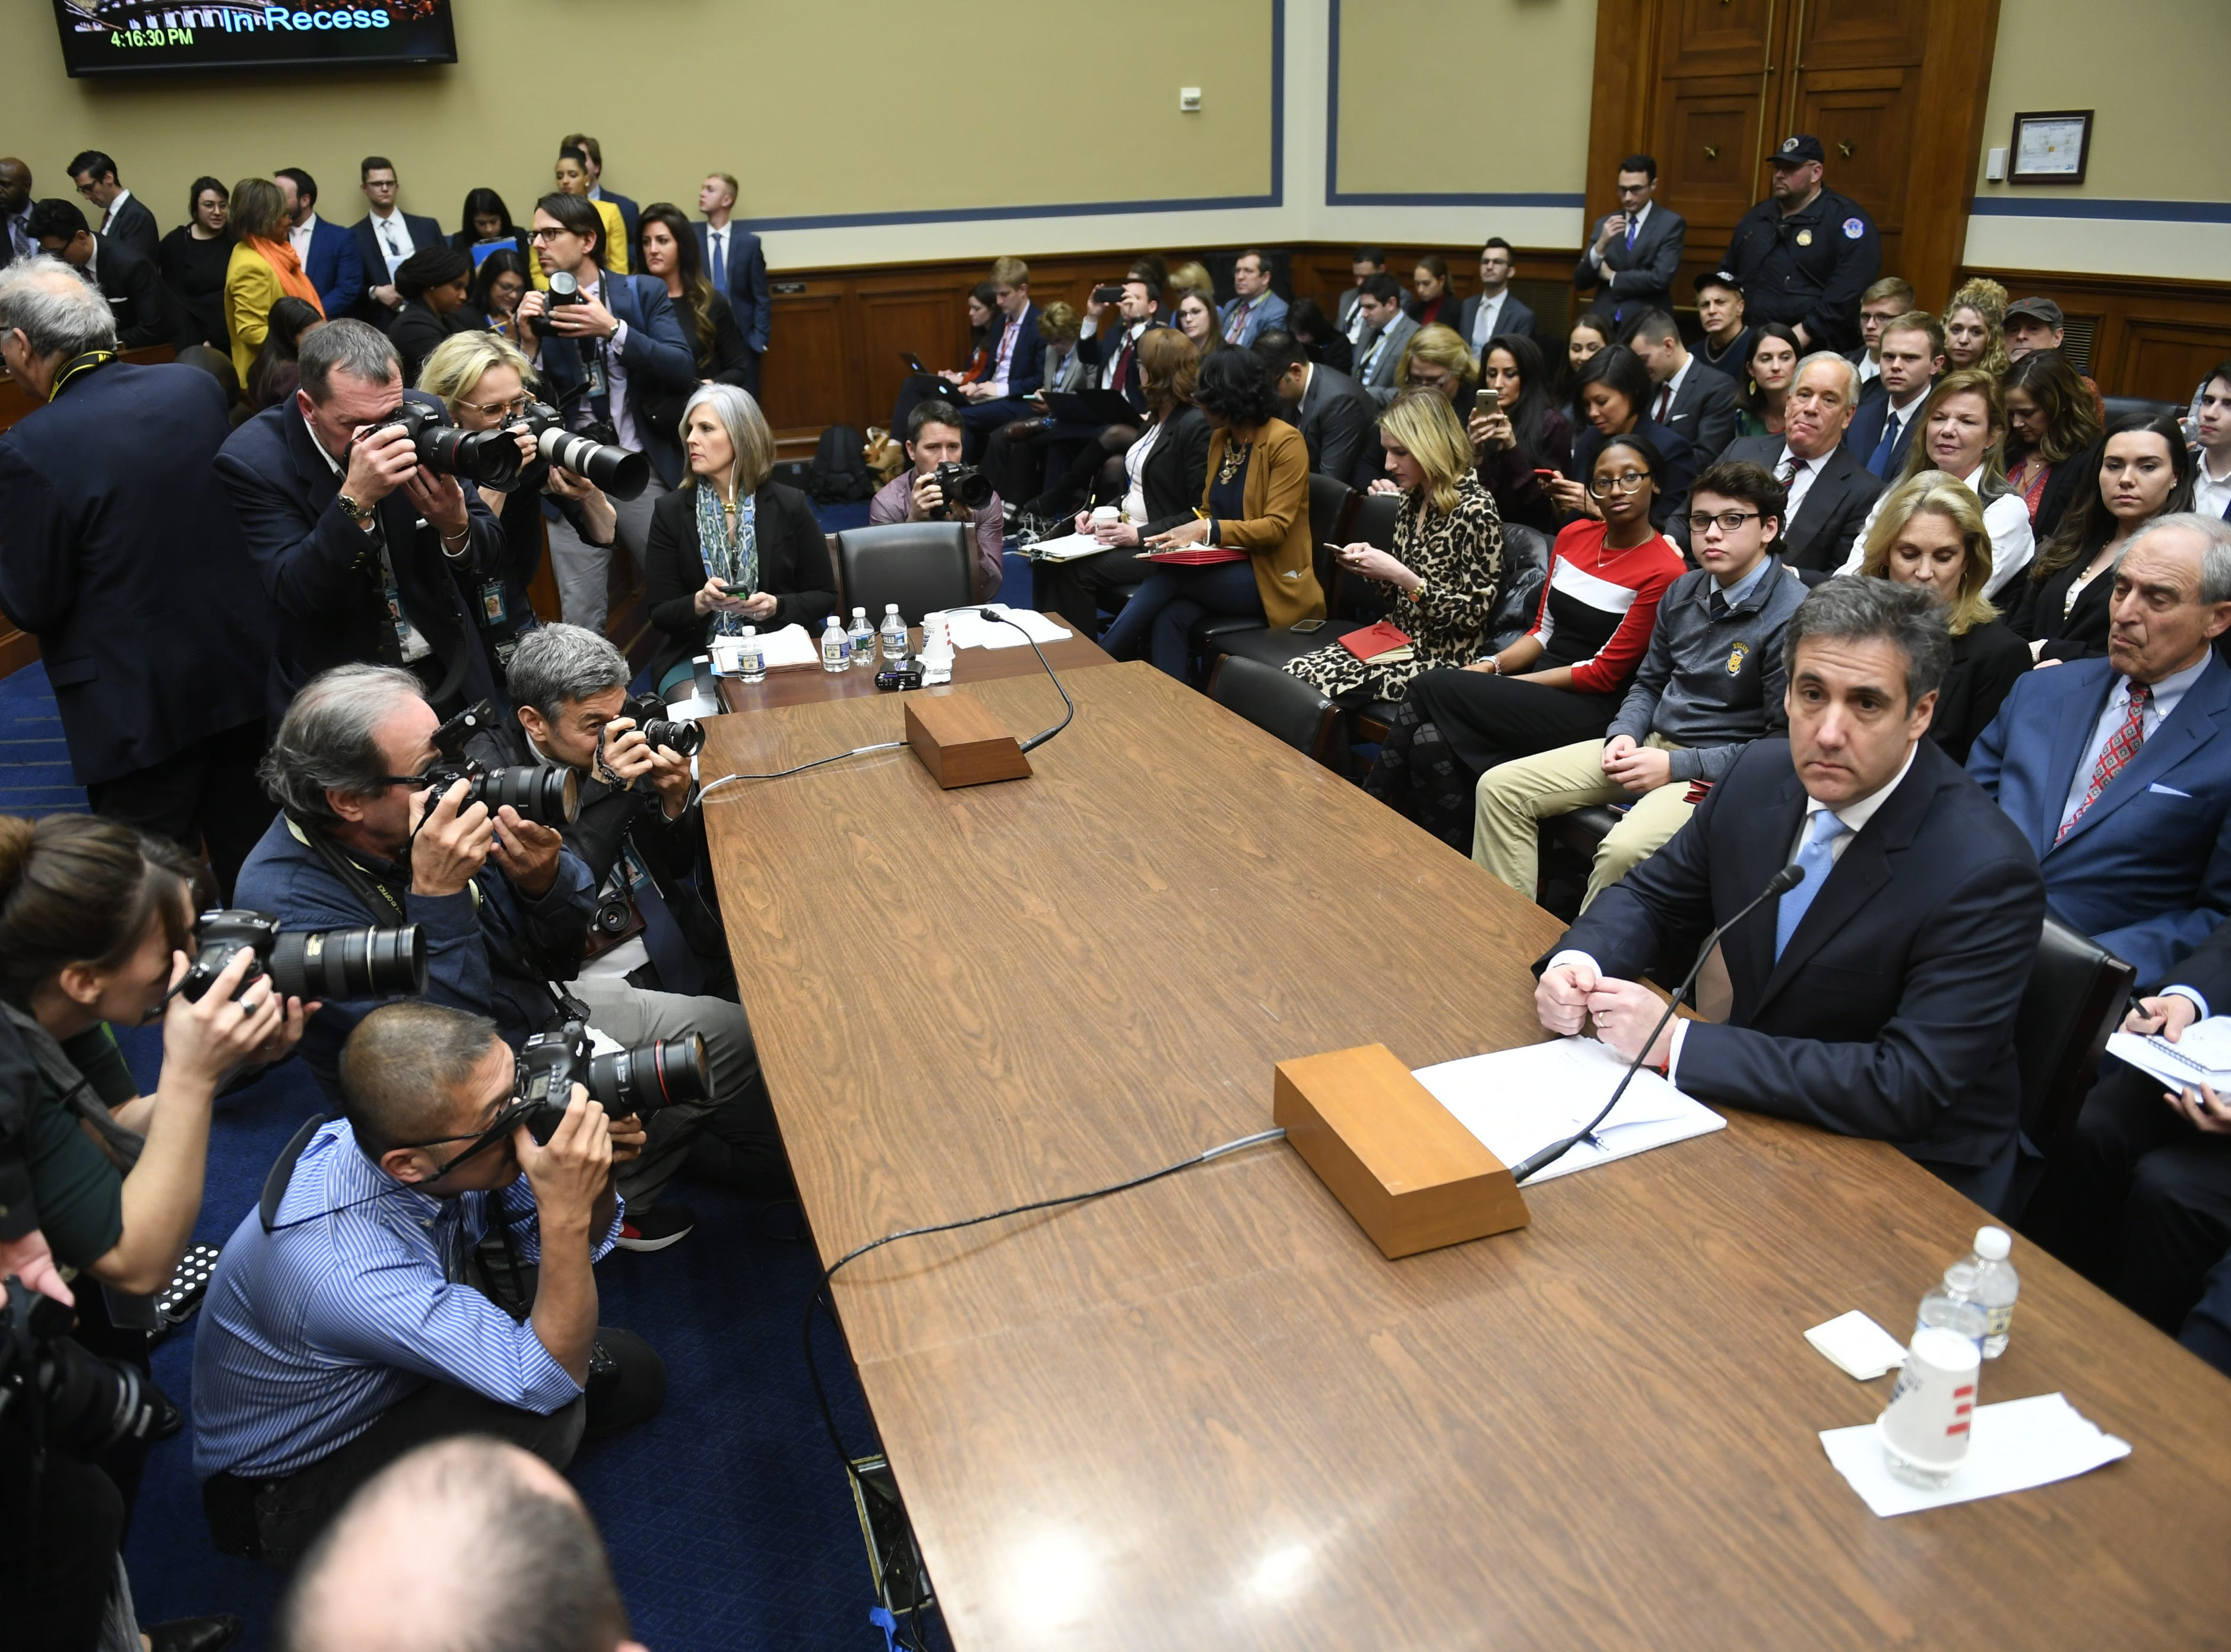 Michael Cohen, President Donald Trump's longtime personal attorney, testifies before the House Committee on Oversight and Reform on Feb. 27, 2019 in Washington. Cohen was sentenced to three years in prison for a series of federal crimes, including campaign finance violations and tax evasion.